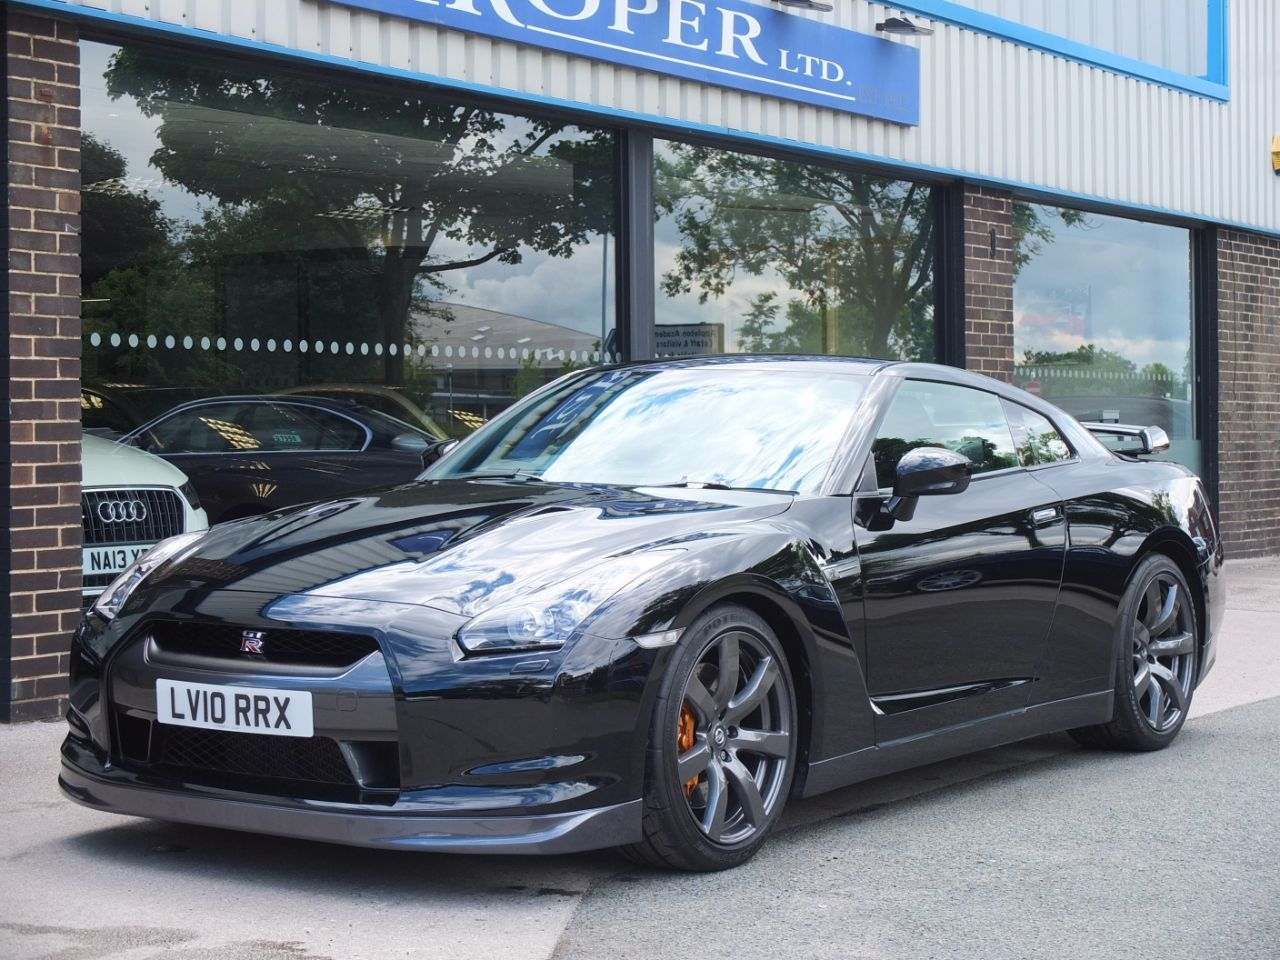 Nissan GT-R 3.8 Black Edition (Litchfield Stage 1) Coupe Petrol Black Pearl